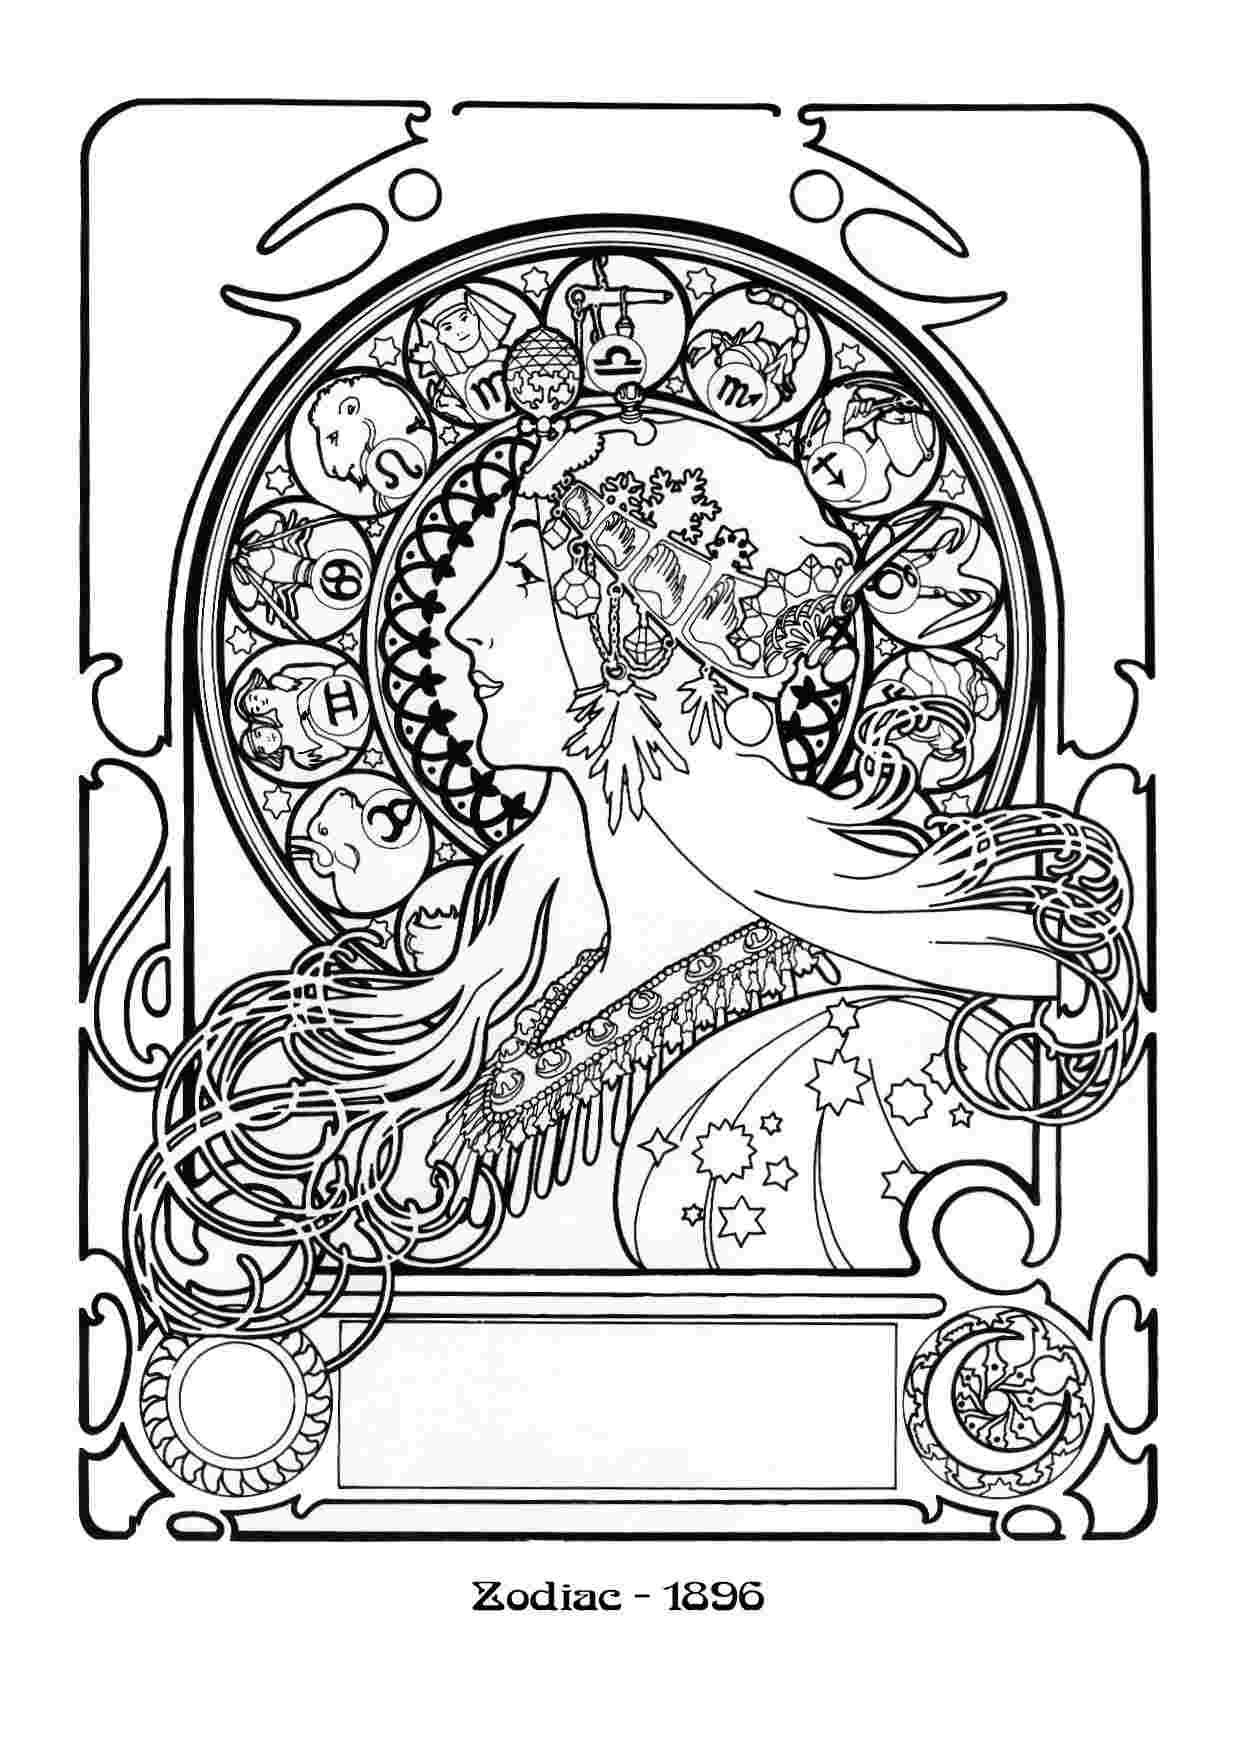 Best Printable: Free Alphonse Mucha Coloring Pages 777++++